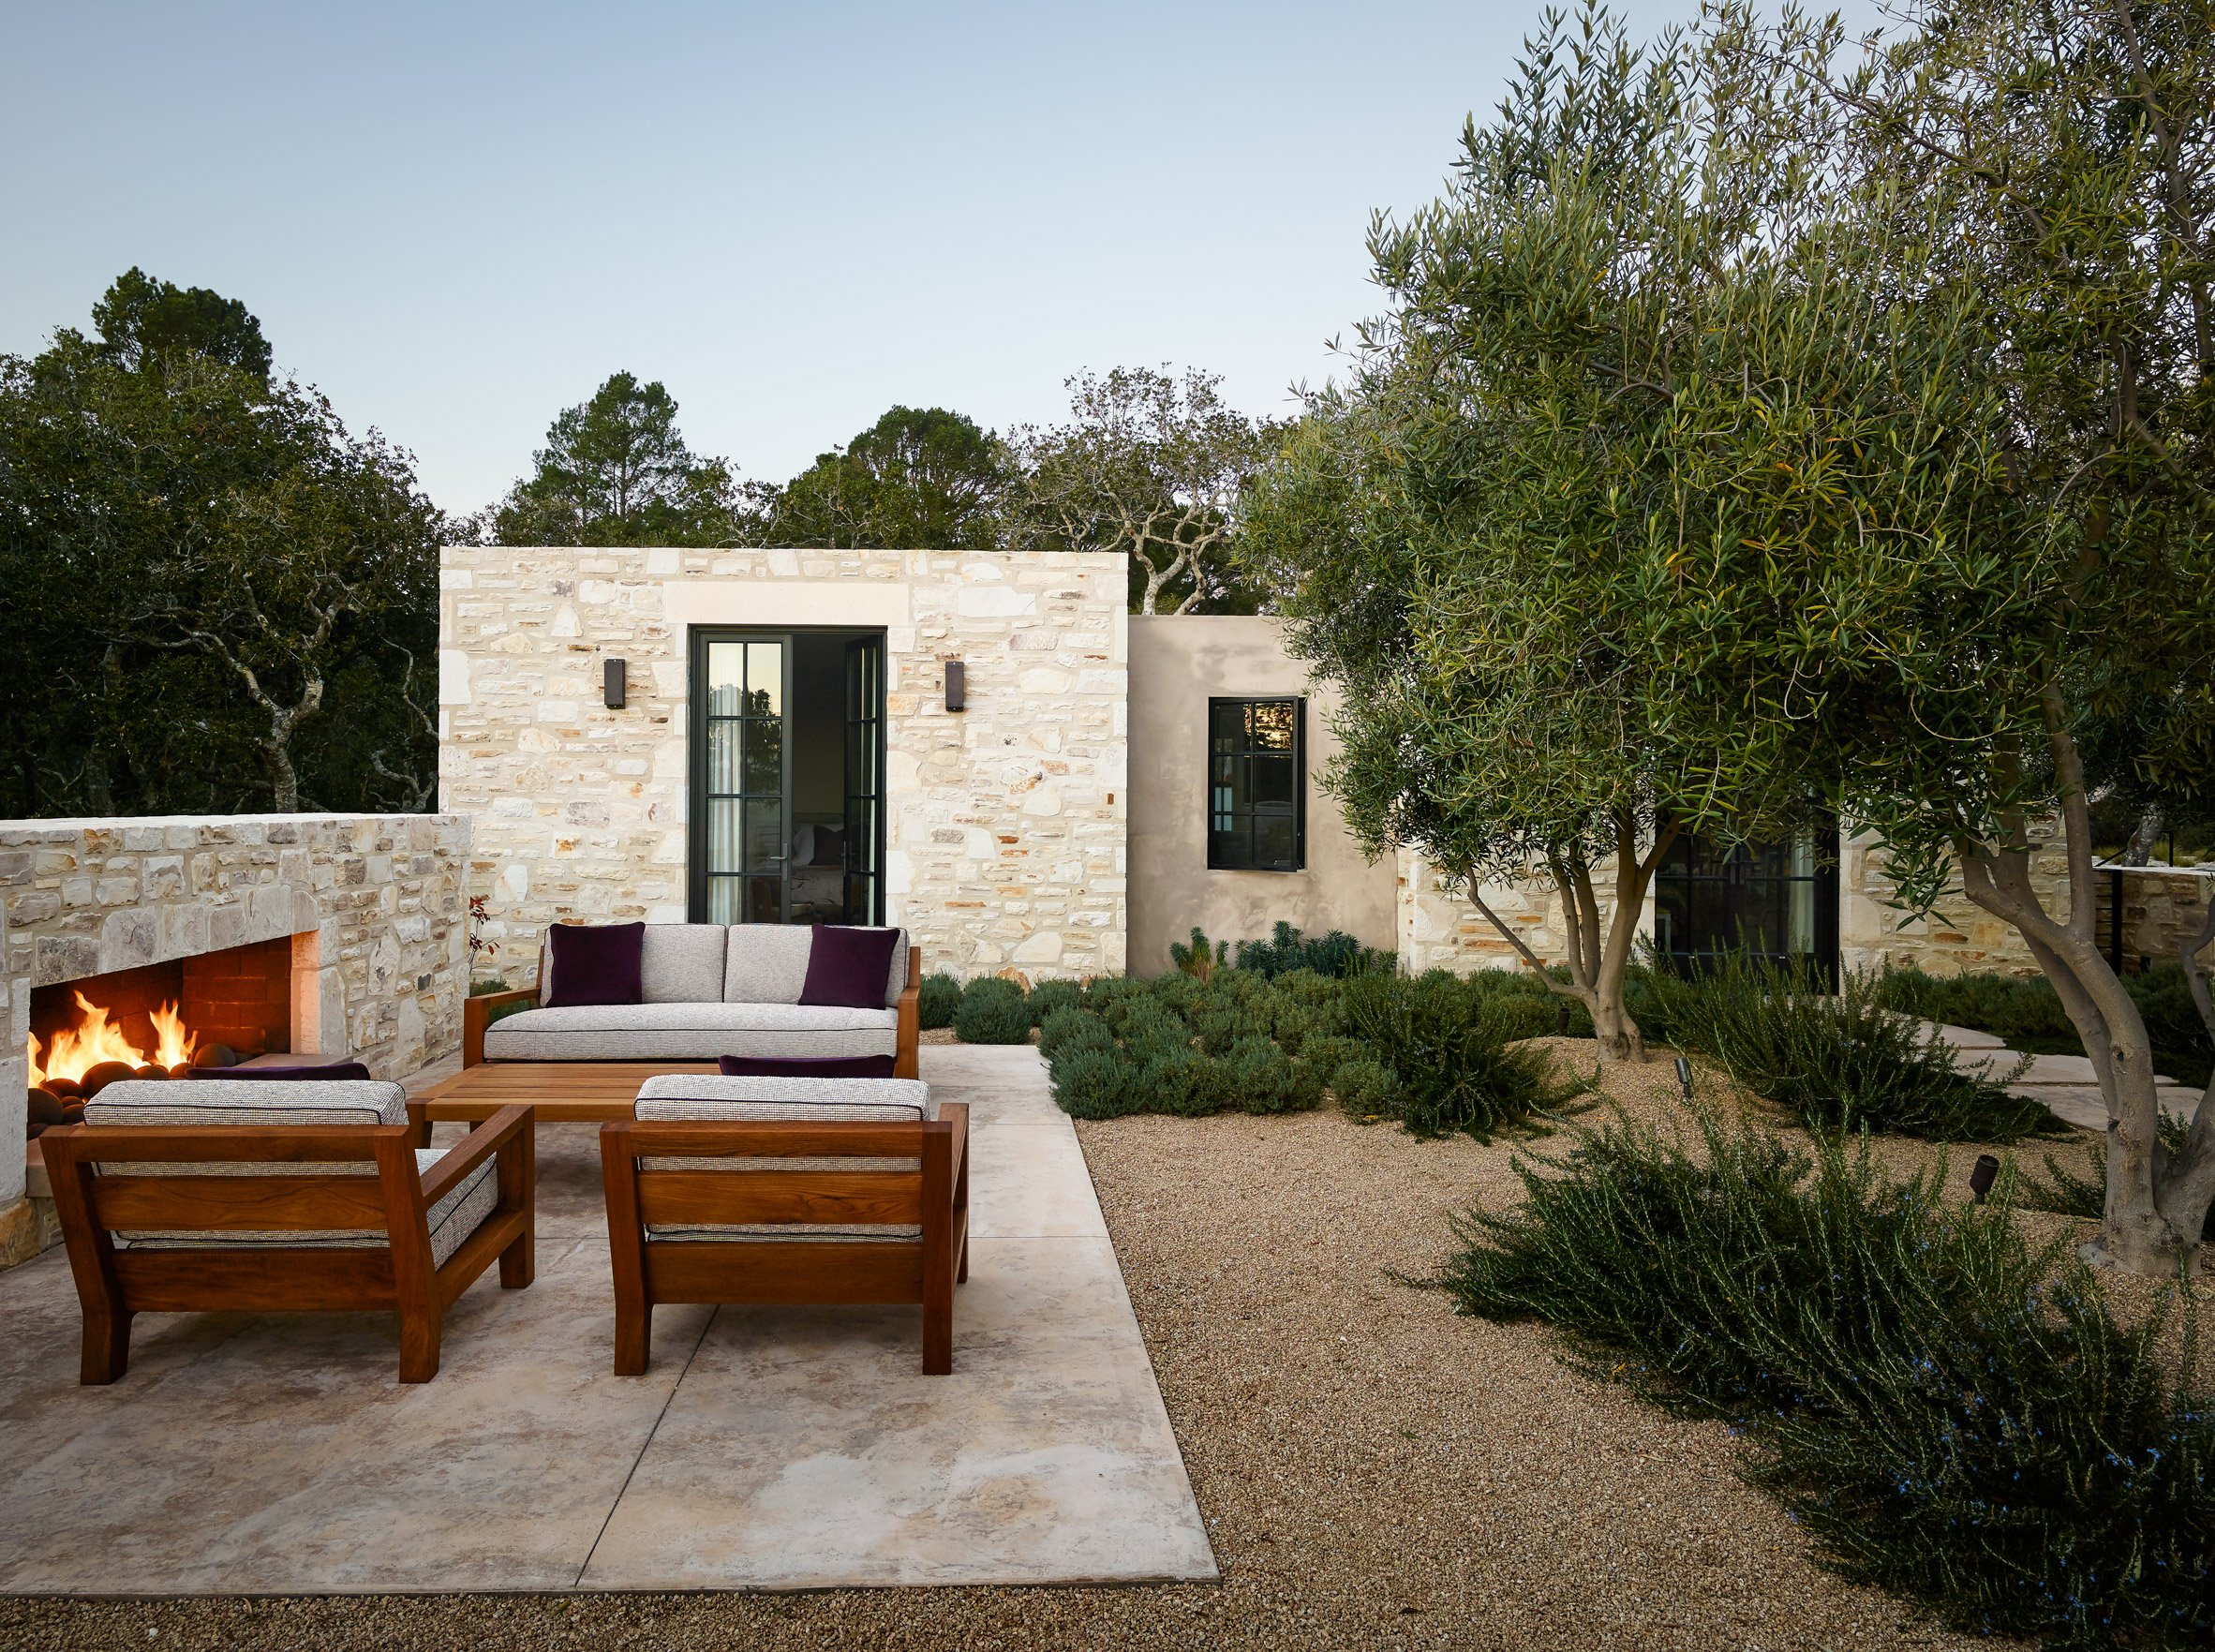 Studio Schicketanz creates California home with glass and textured stone walls